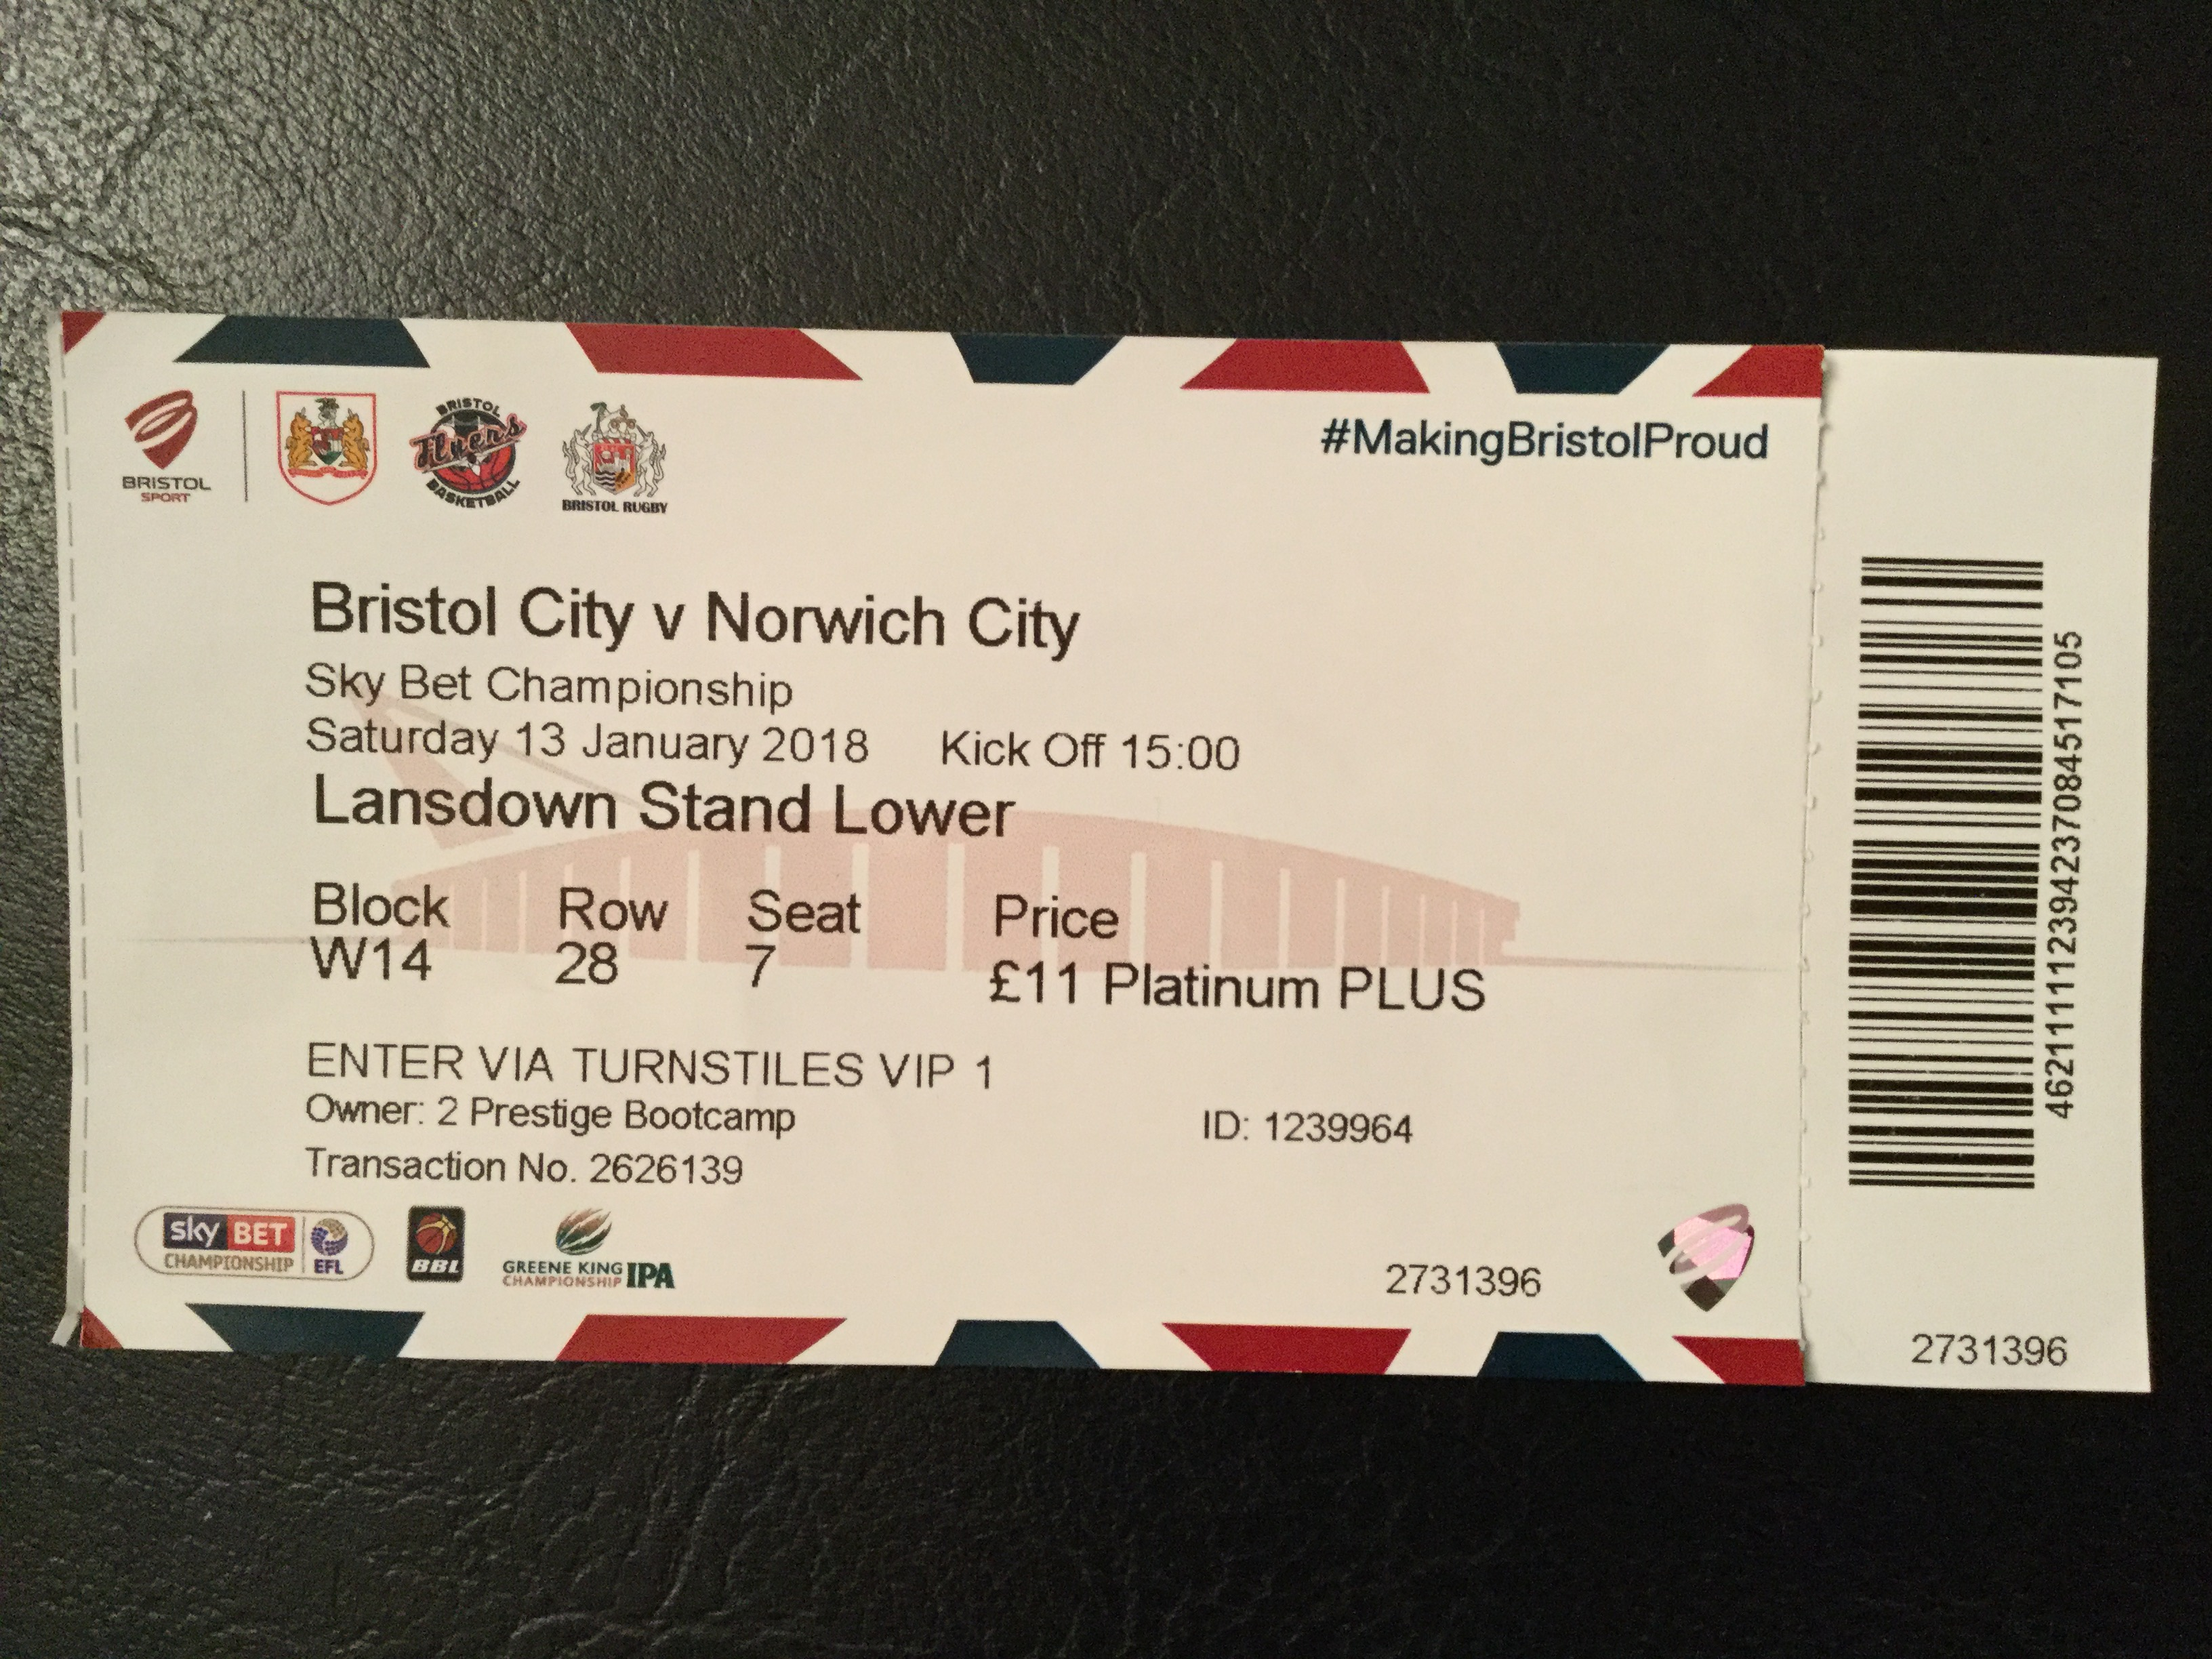 Bristol City v Norwich City 13-01-2018 Ticket